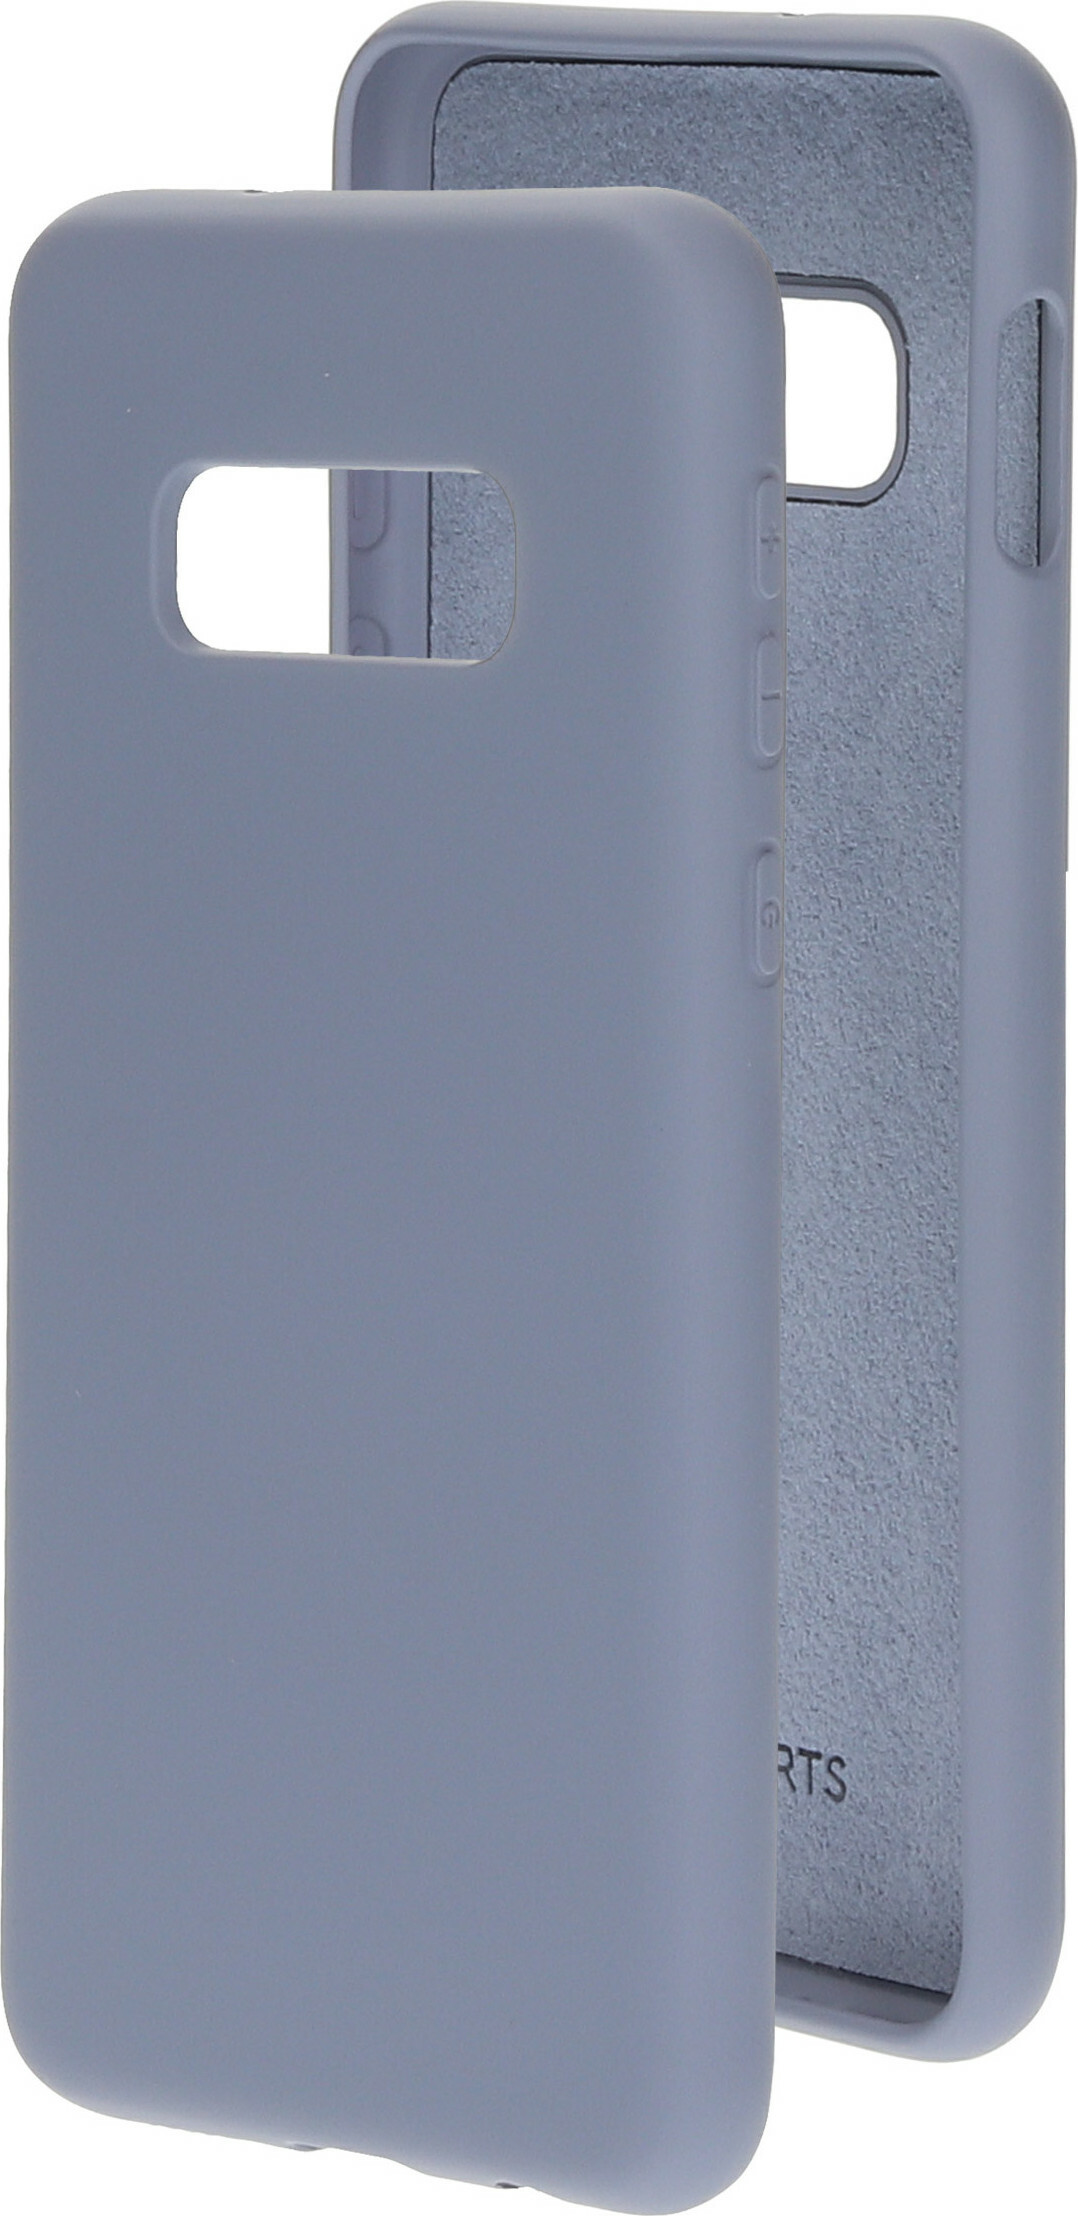 Mobiparts Silicone Cover Samsung Galaxy S10e Royal Grey